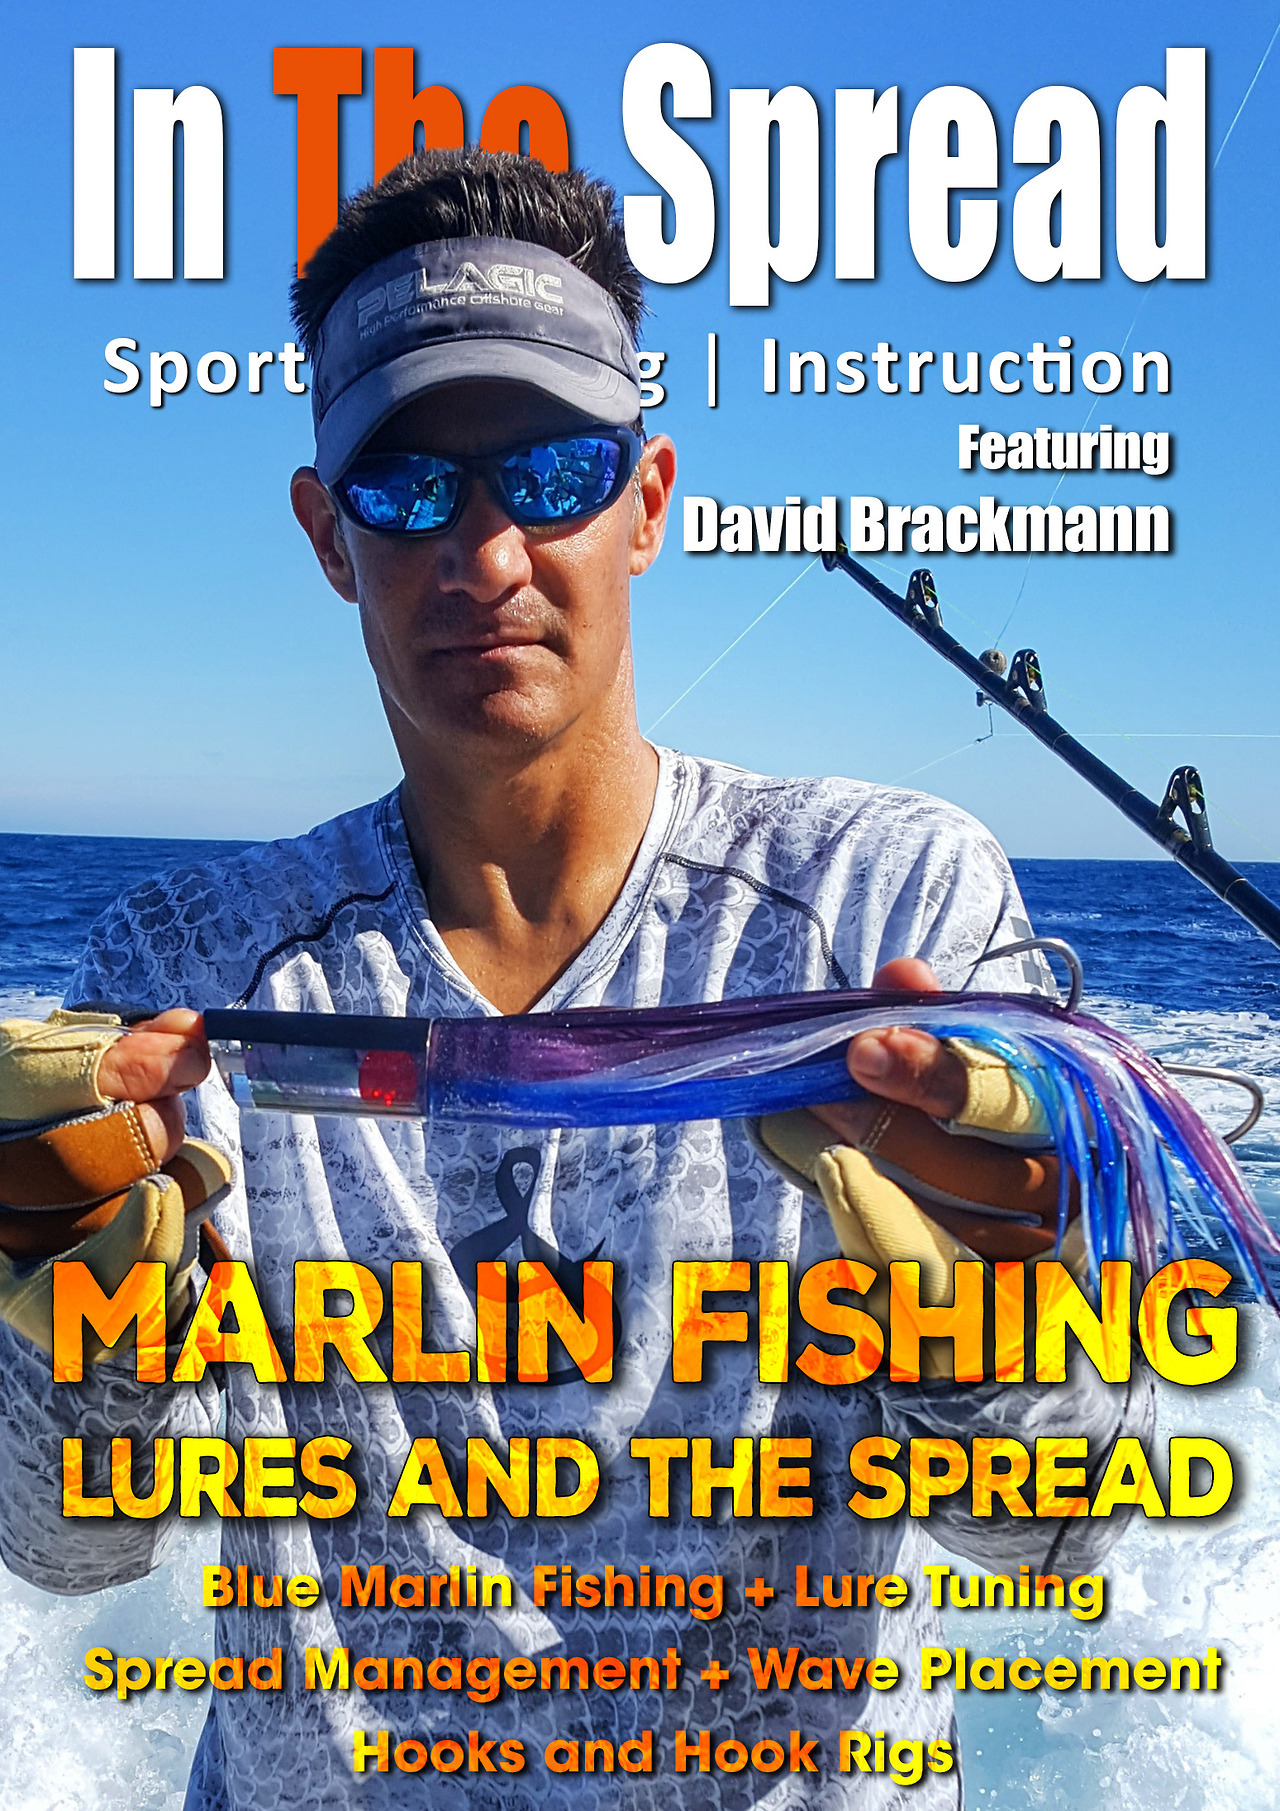 marlin fishing lures trolling in the spread videos david brackmann